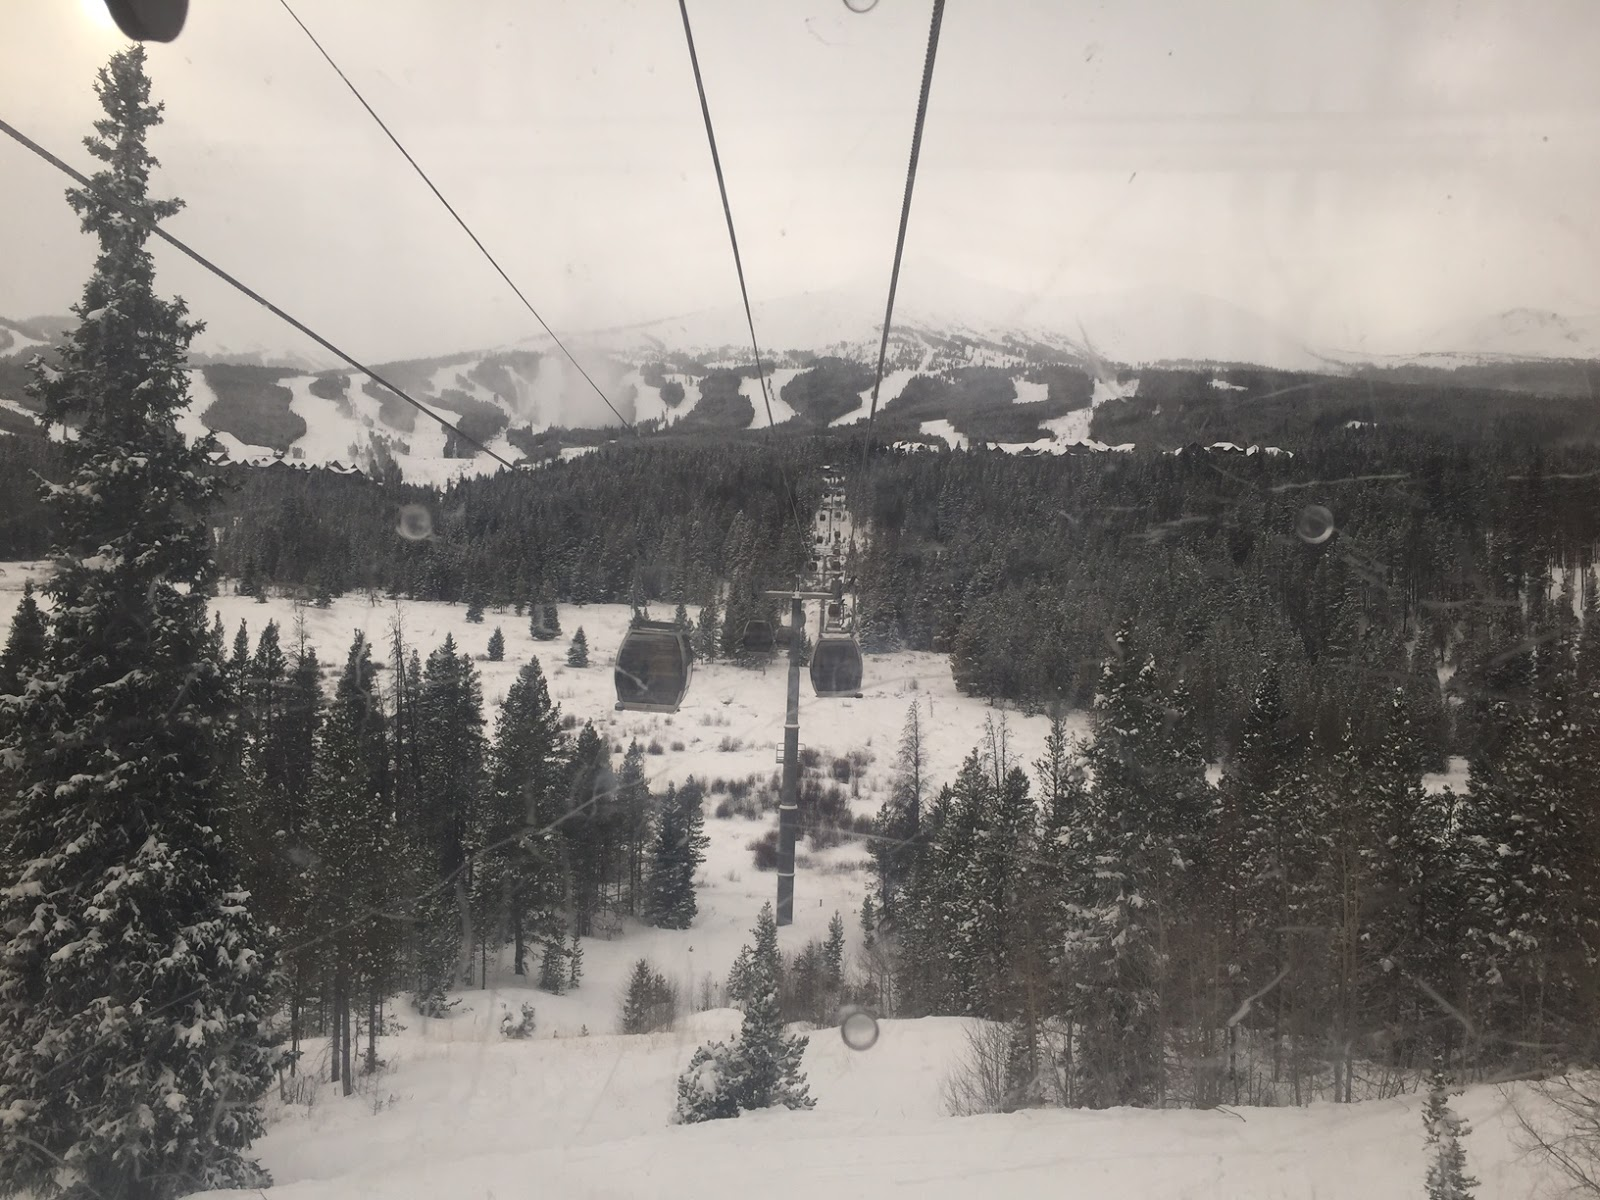 breckenridge is a small ski town about 80 miles west of denver via i 70 it should take about 2 hours to drive as long as you dont run into bad weather or - Breckenridge Christmas